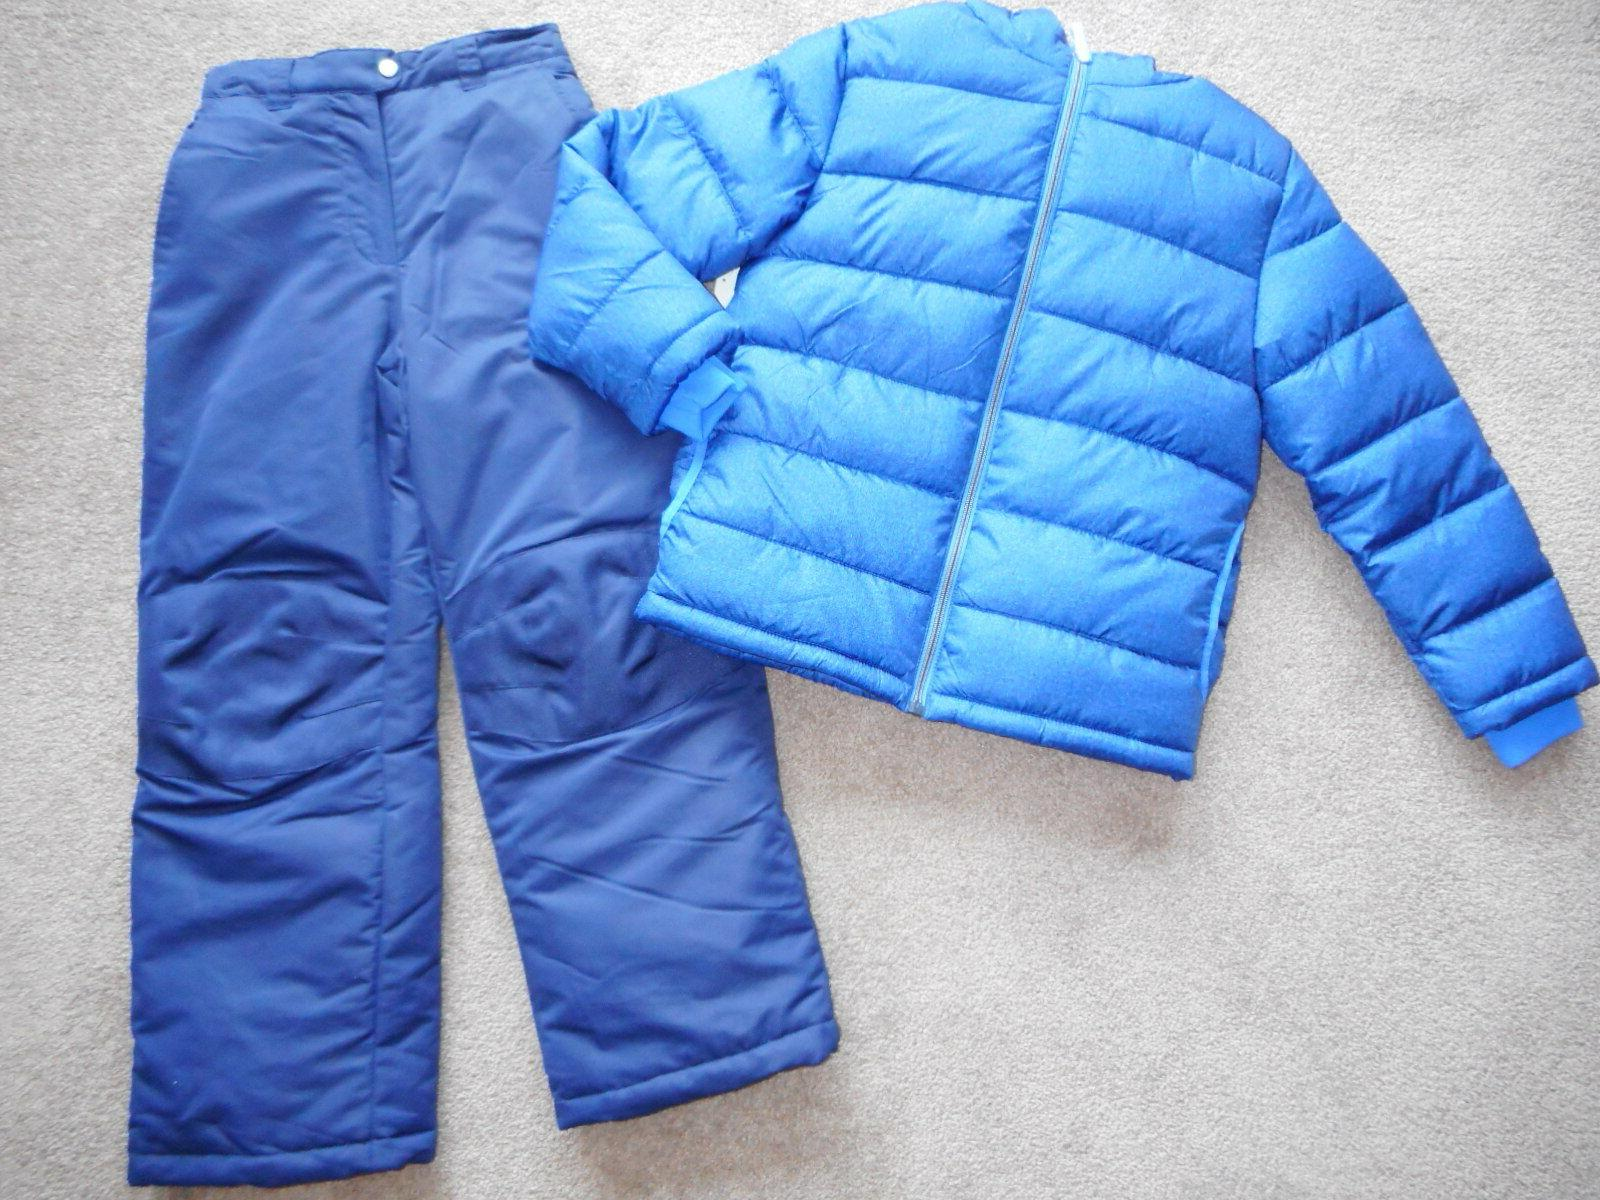 Snowsuits ski Puffer Jacket Coats Blue Pants 2 Pc 10/12